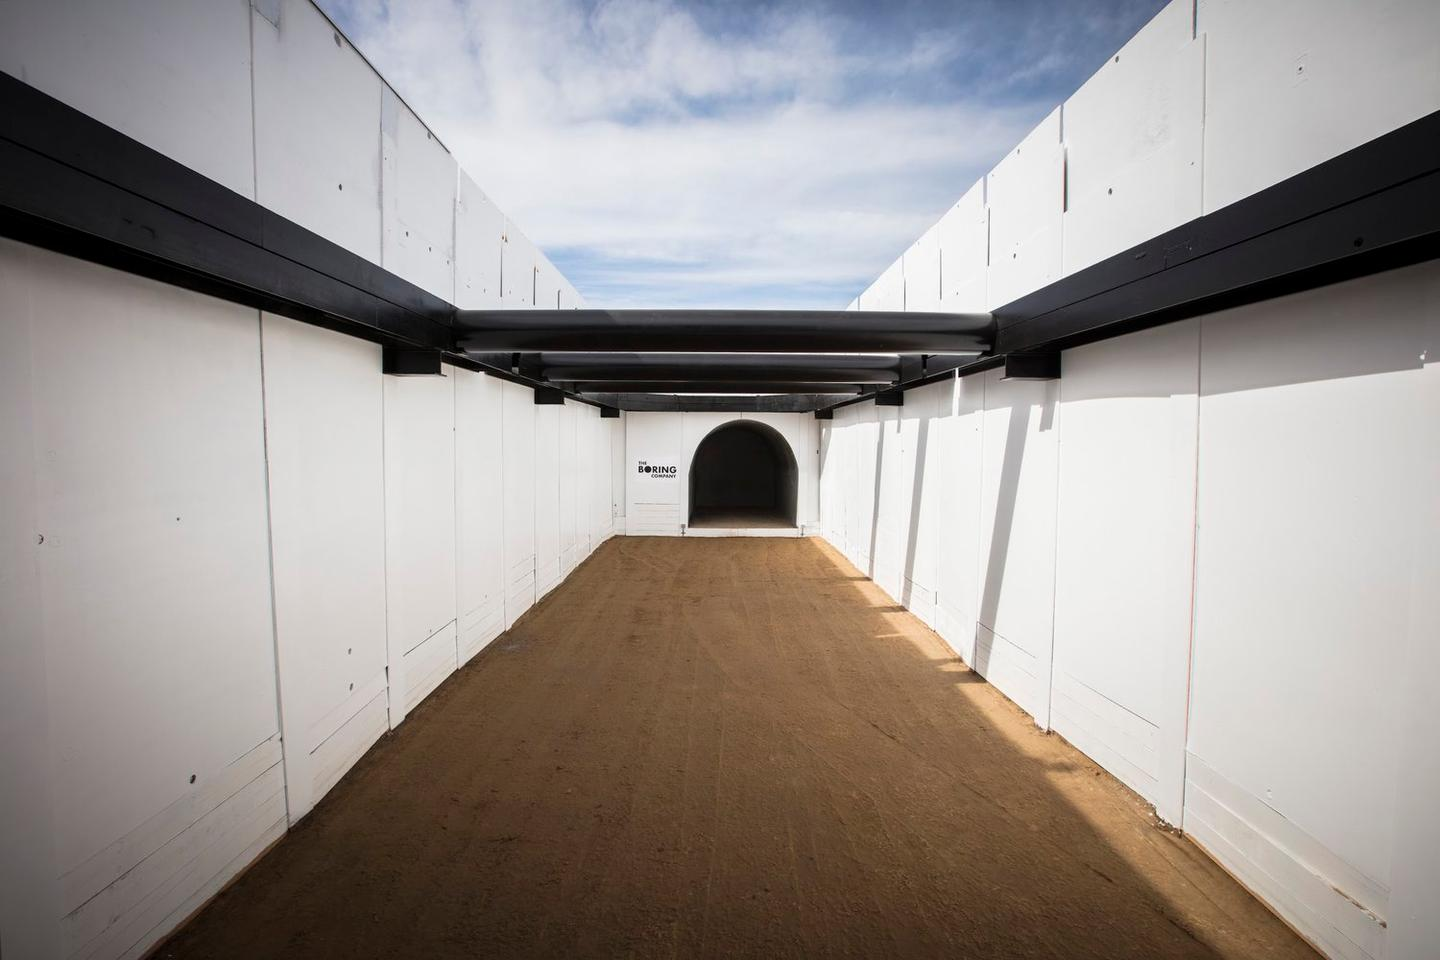 The Boring Company has already begun digging a test tunnel at its headquarters in LA